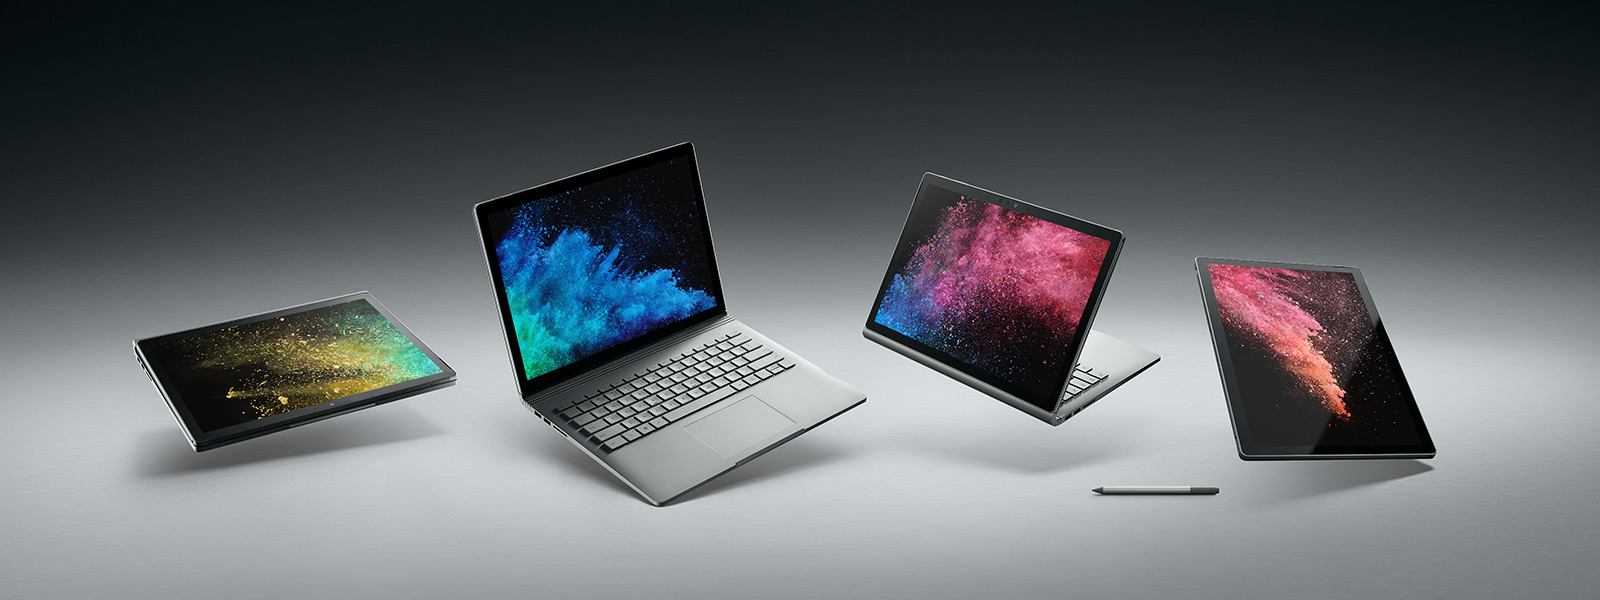 Surface Book 2 shown in different modes, with Surface Pen.